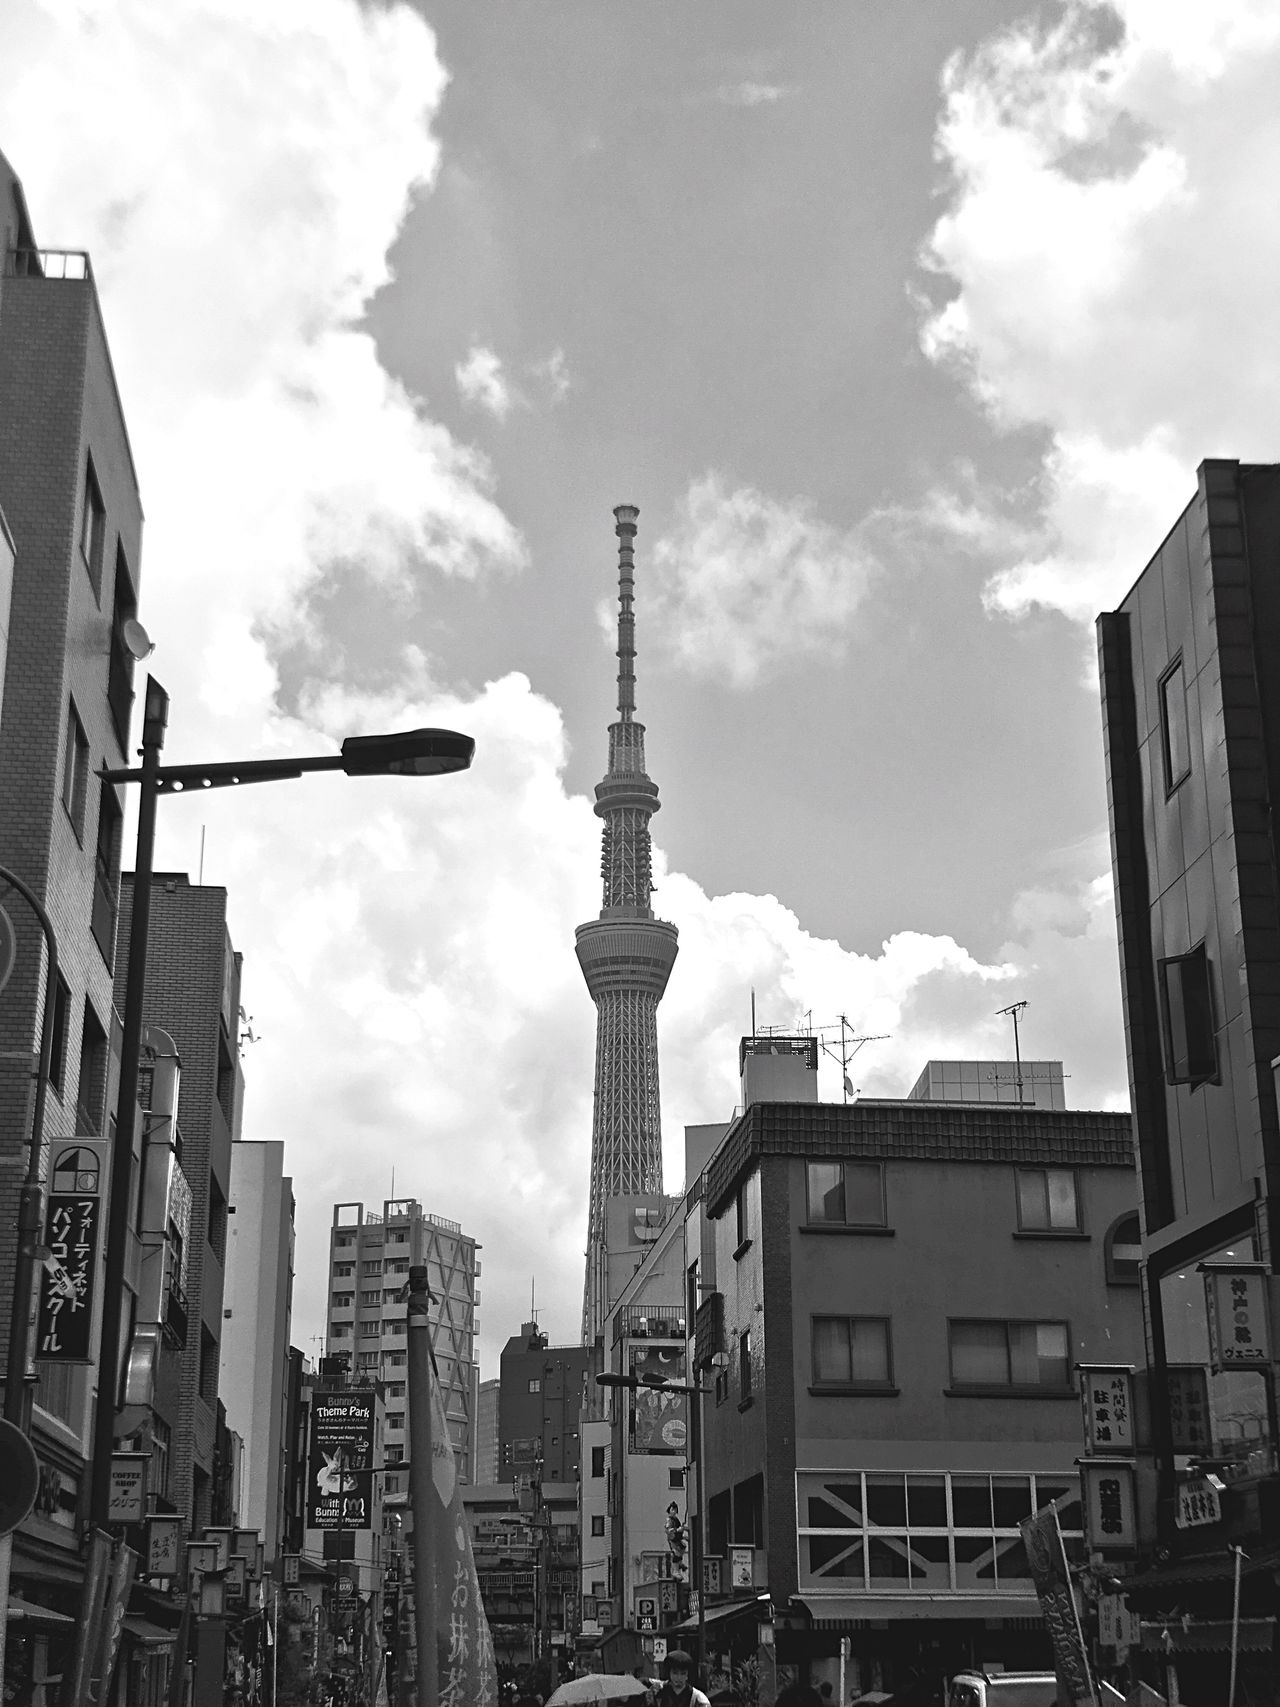 Battle Of The Cities Japan Photography Japan Tokyo,Japan Tokyo Skytree 晴空塔 天空樹